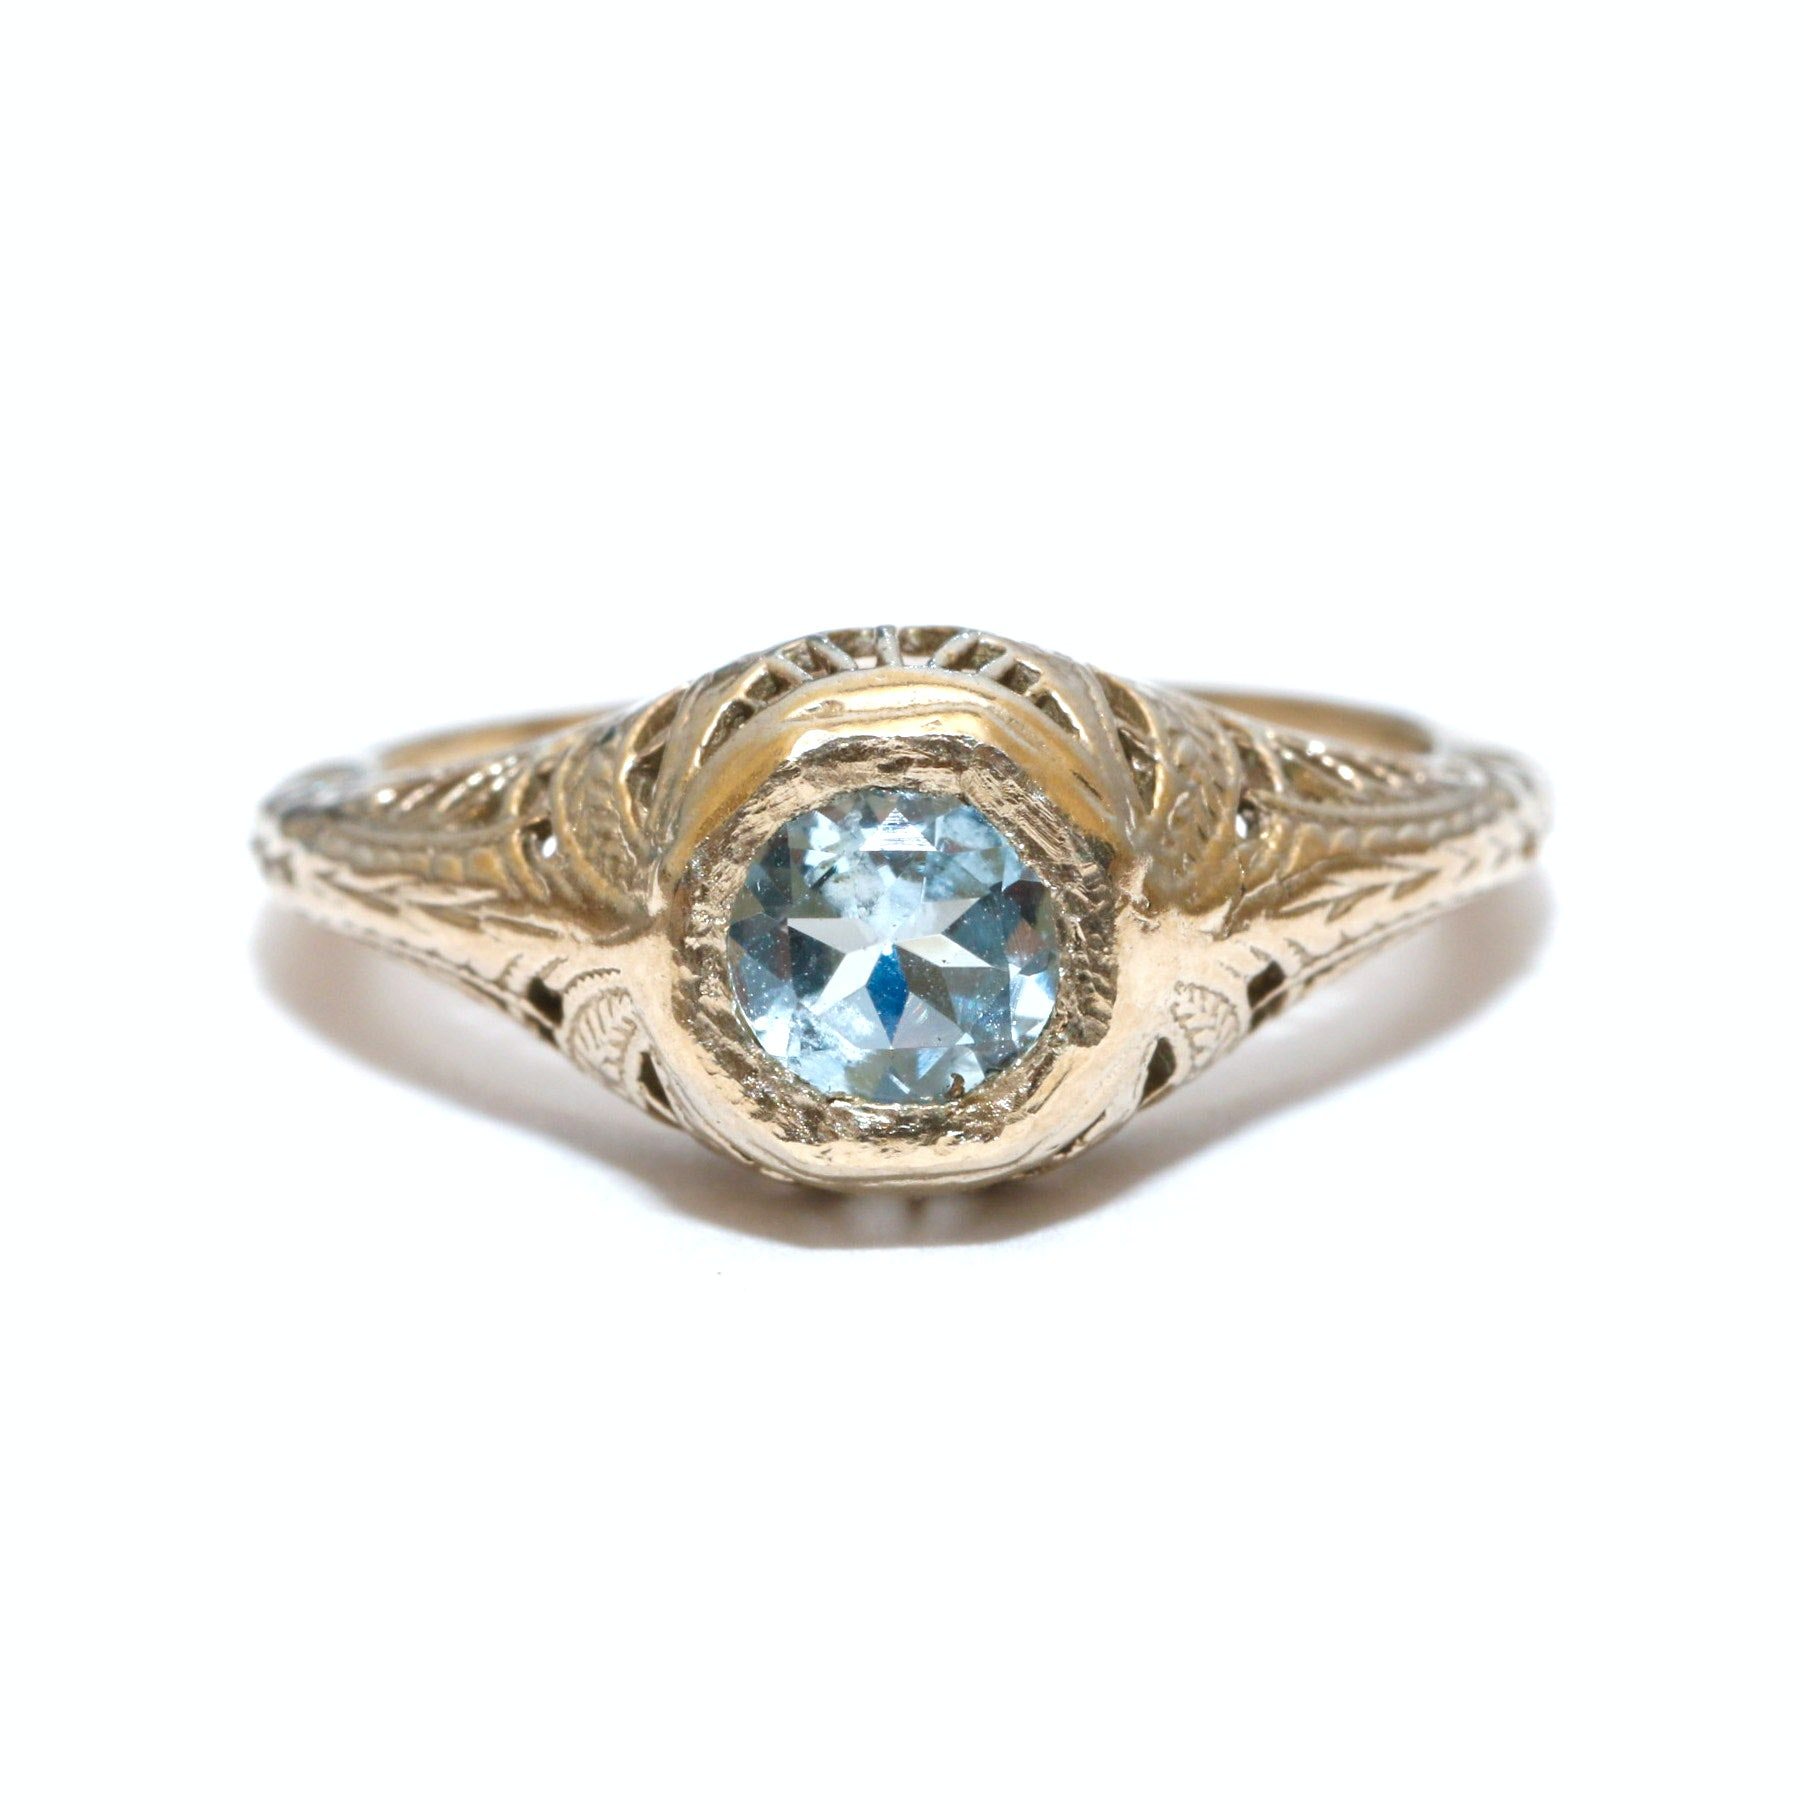 14K Yellow Gold Aquamarine Filigree Ring